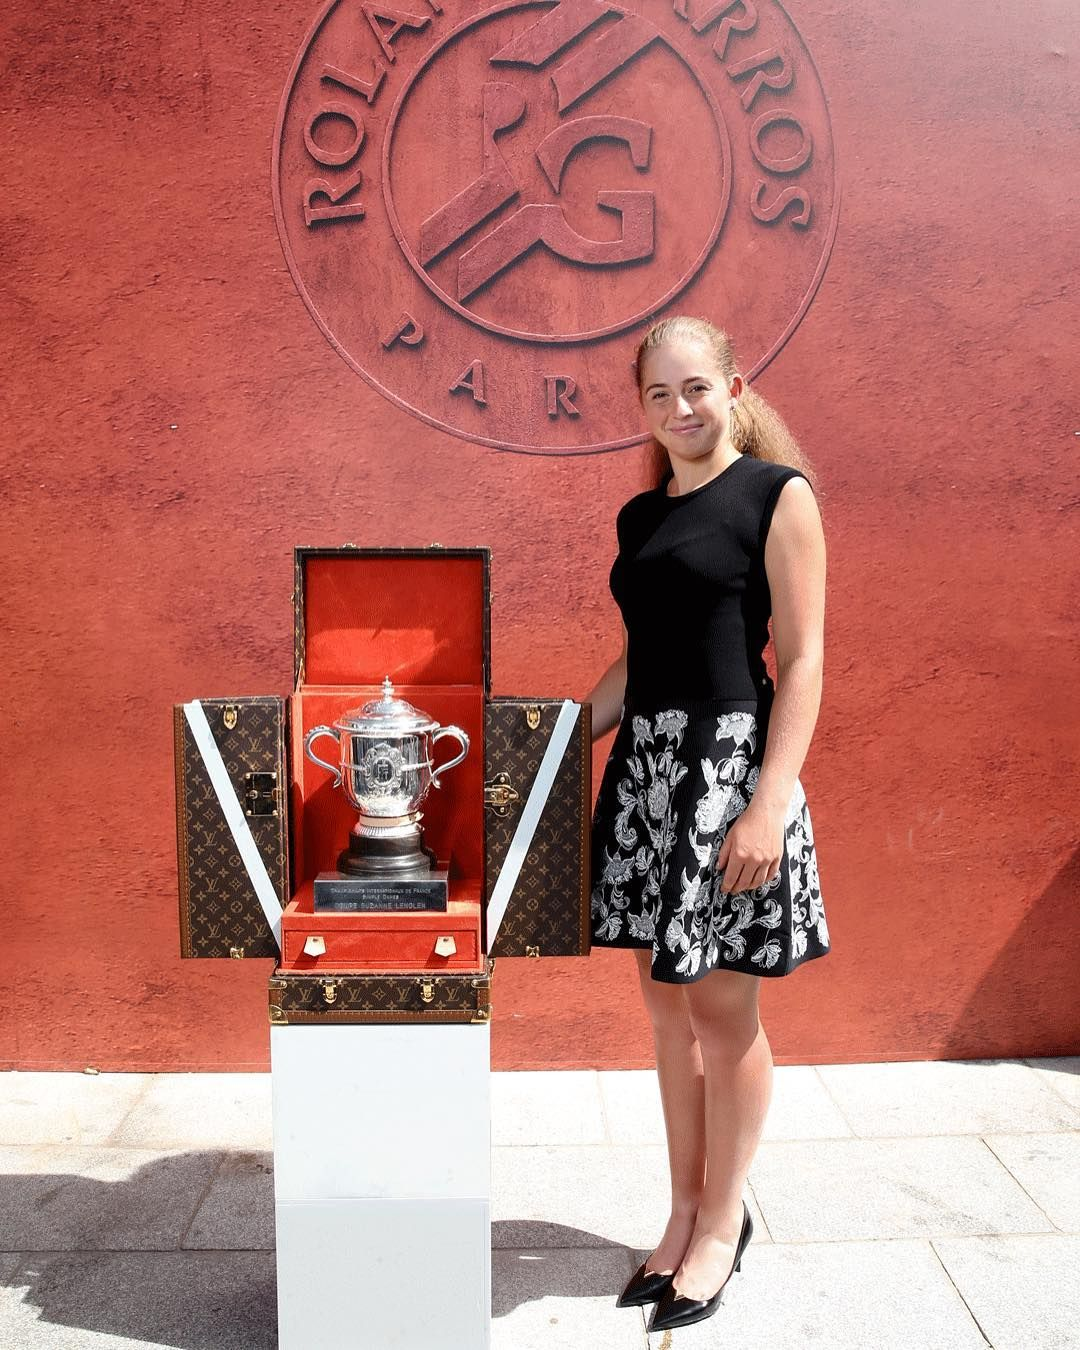 Victory Travels In Louis Vuitton Jelena Ostapenko Winner Of The French Open Roland Garros 2017 Wearing Louisvuitton By Nicolas Couture Models Louis Vuitton